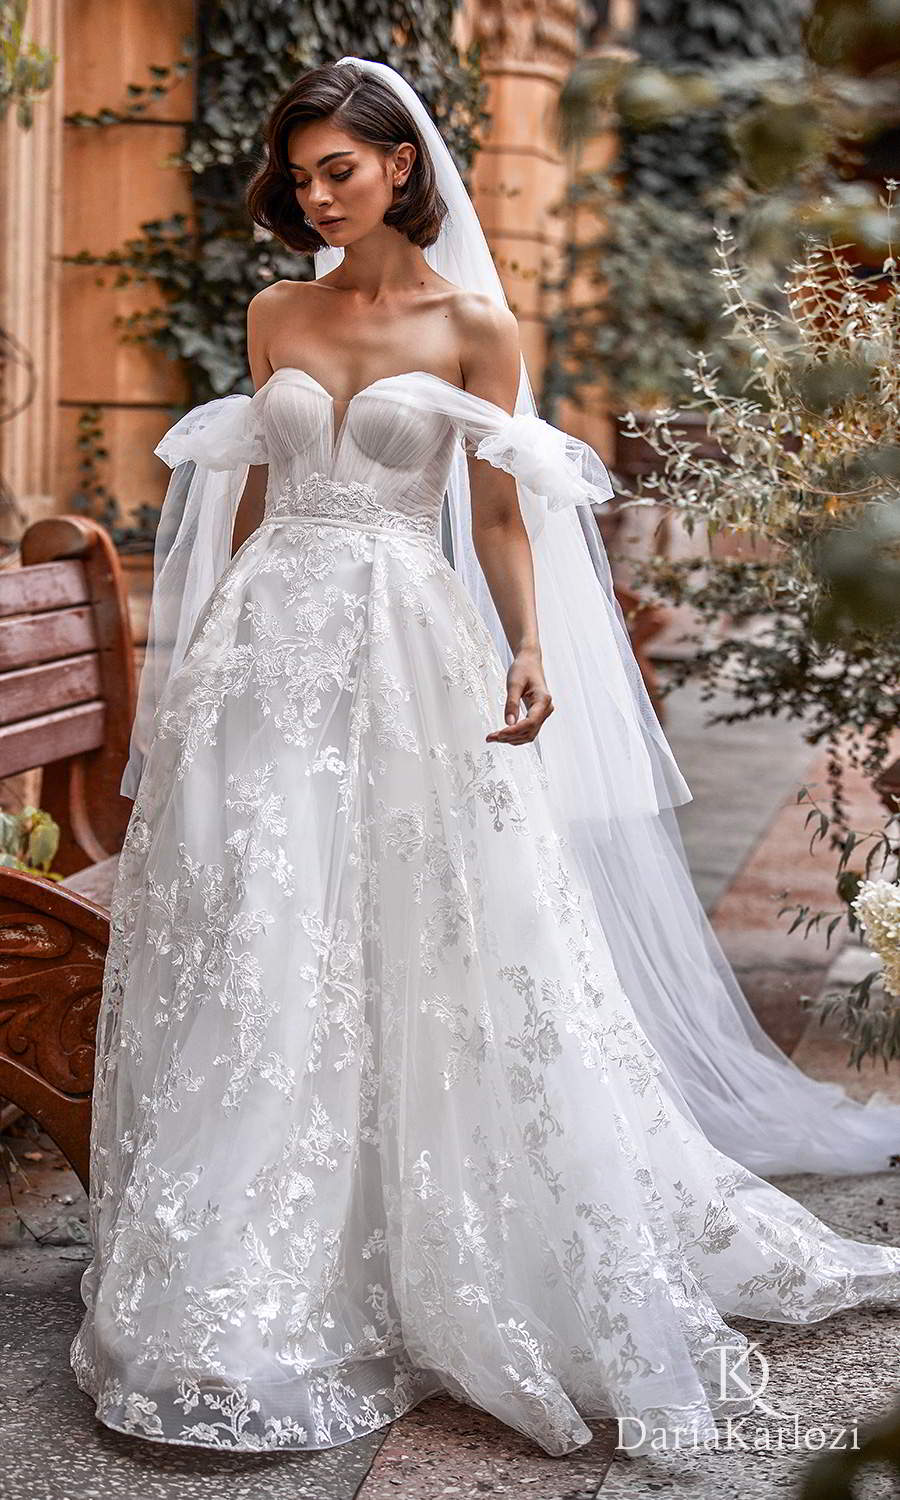 daria karlozi 2021 graceful dream bridal off shoulder straps sweetheart neckline ruched bodice lace skirt a line ball gown wedding dress chapel train (wings of love) mv